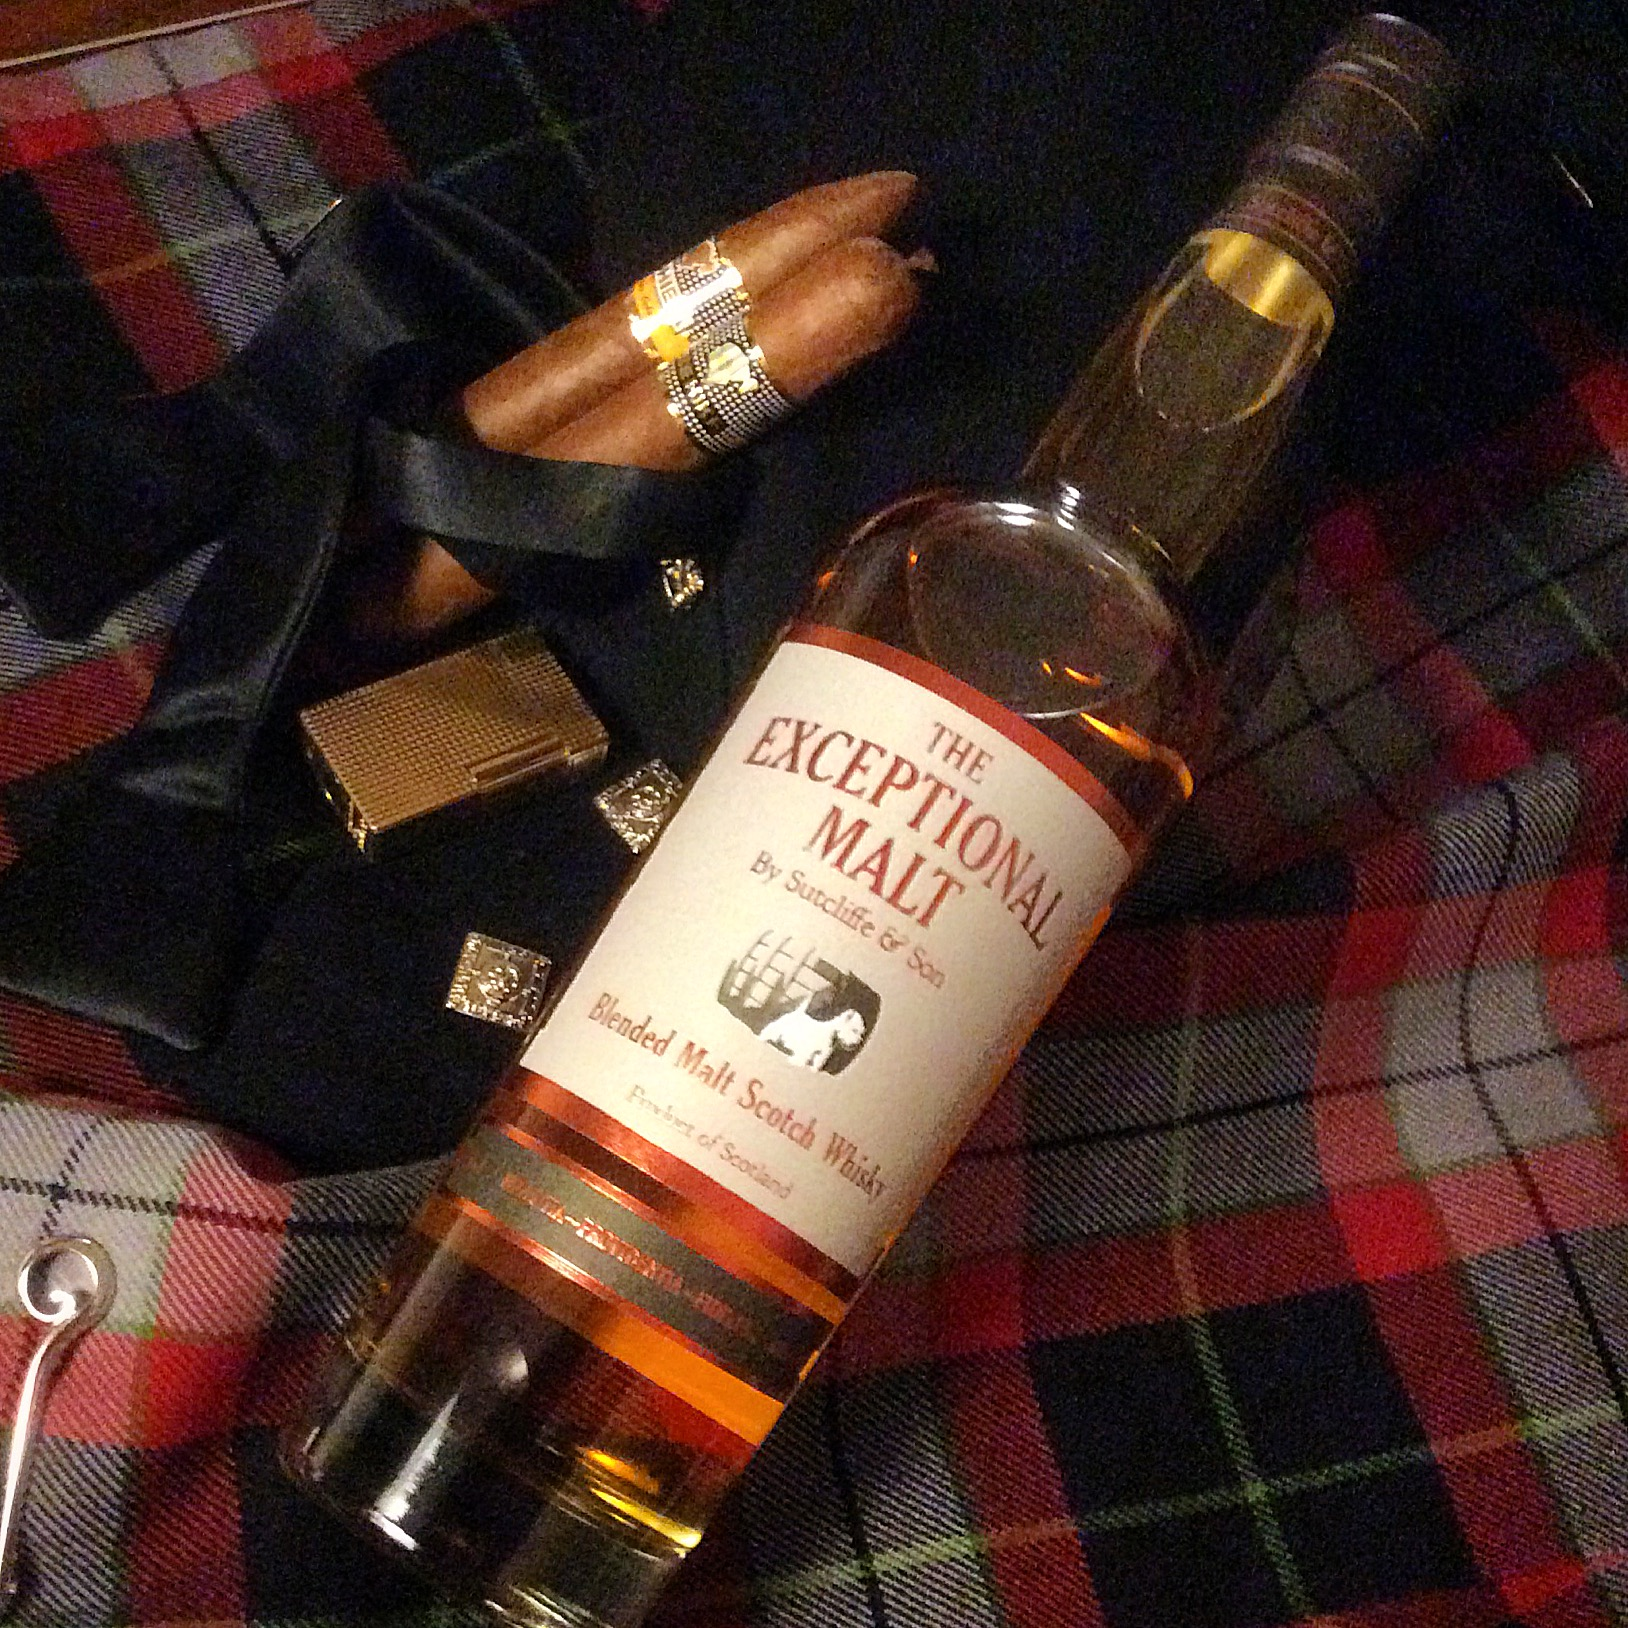 The Exceptional Malt - Blended Malt Scotch Whisky